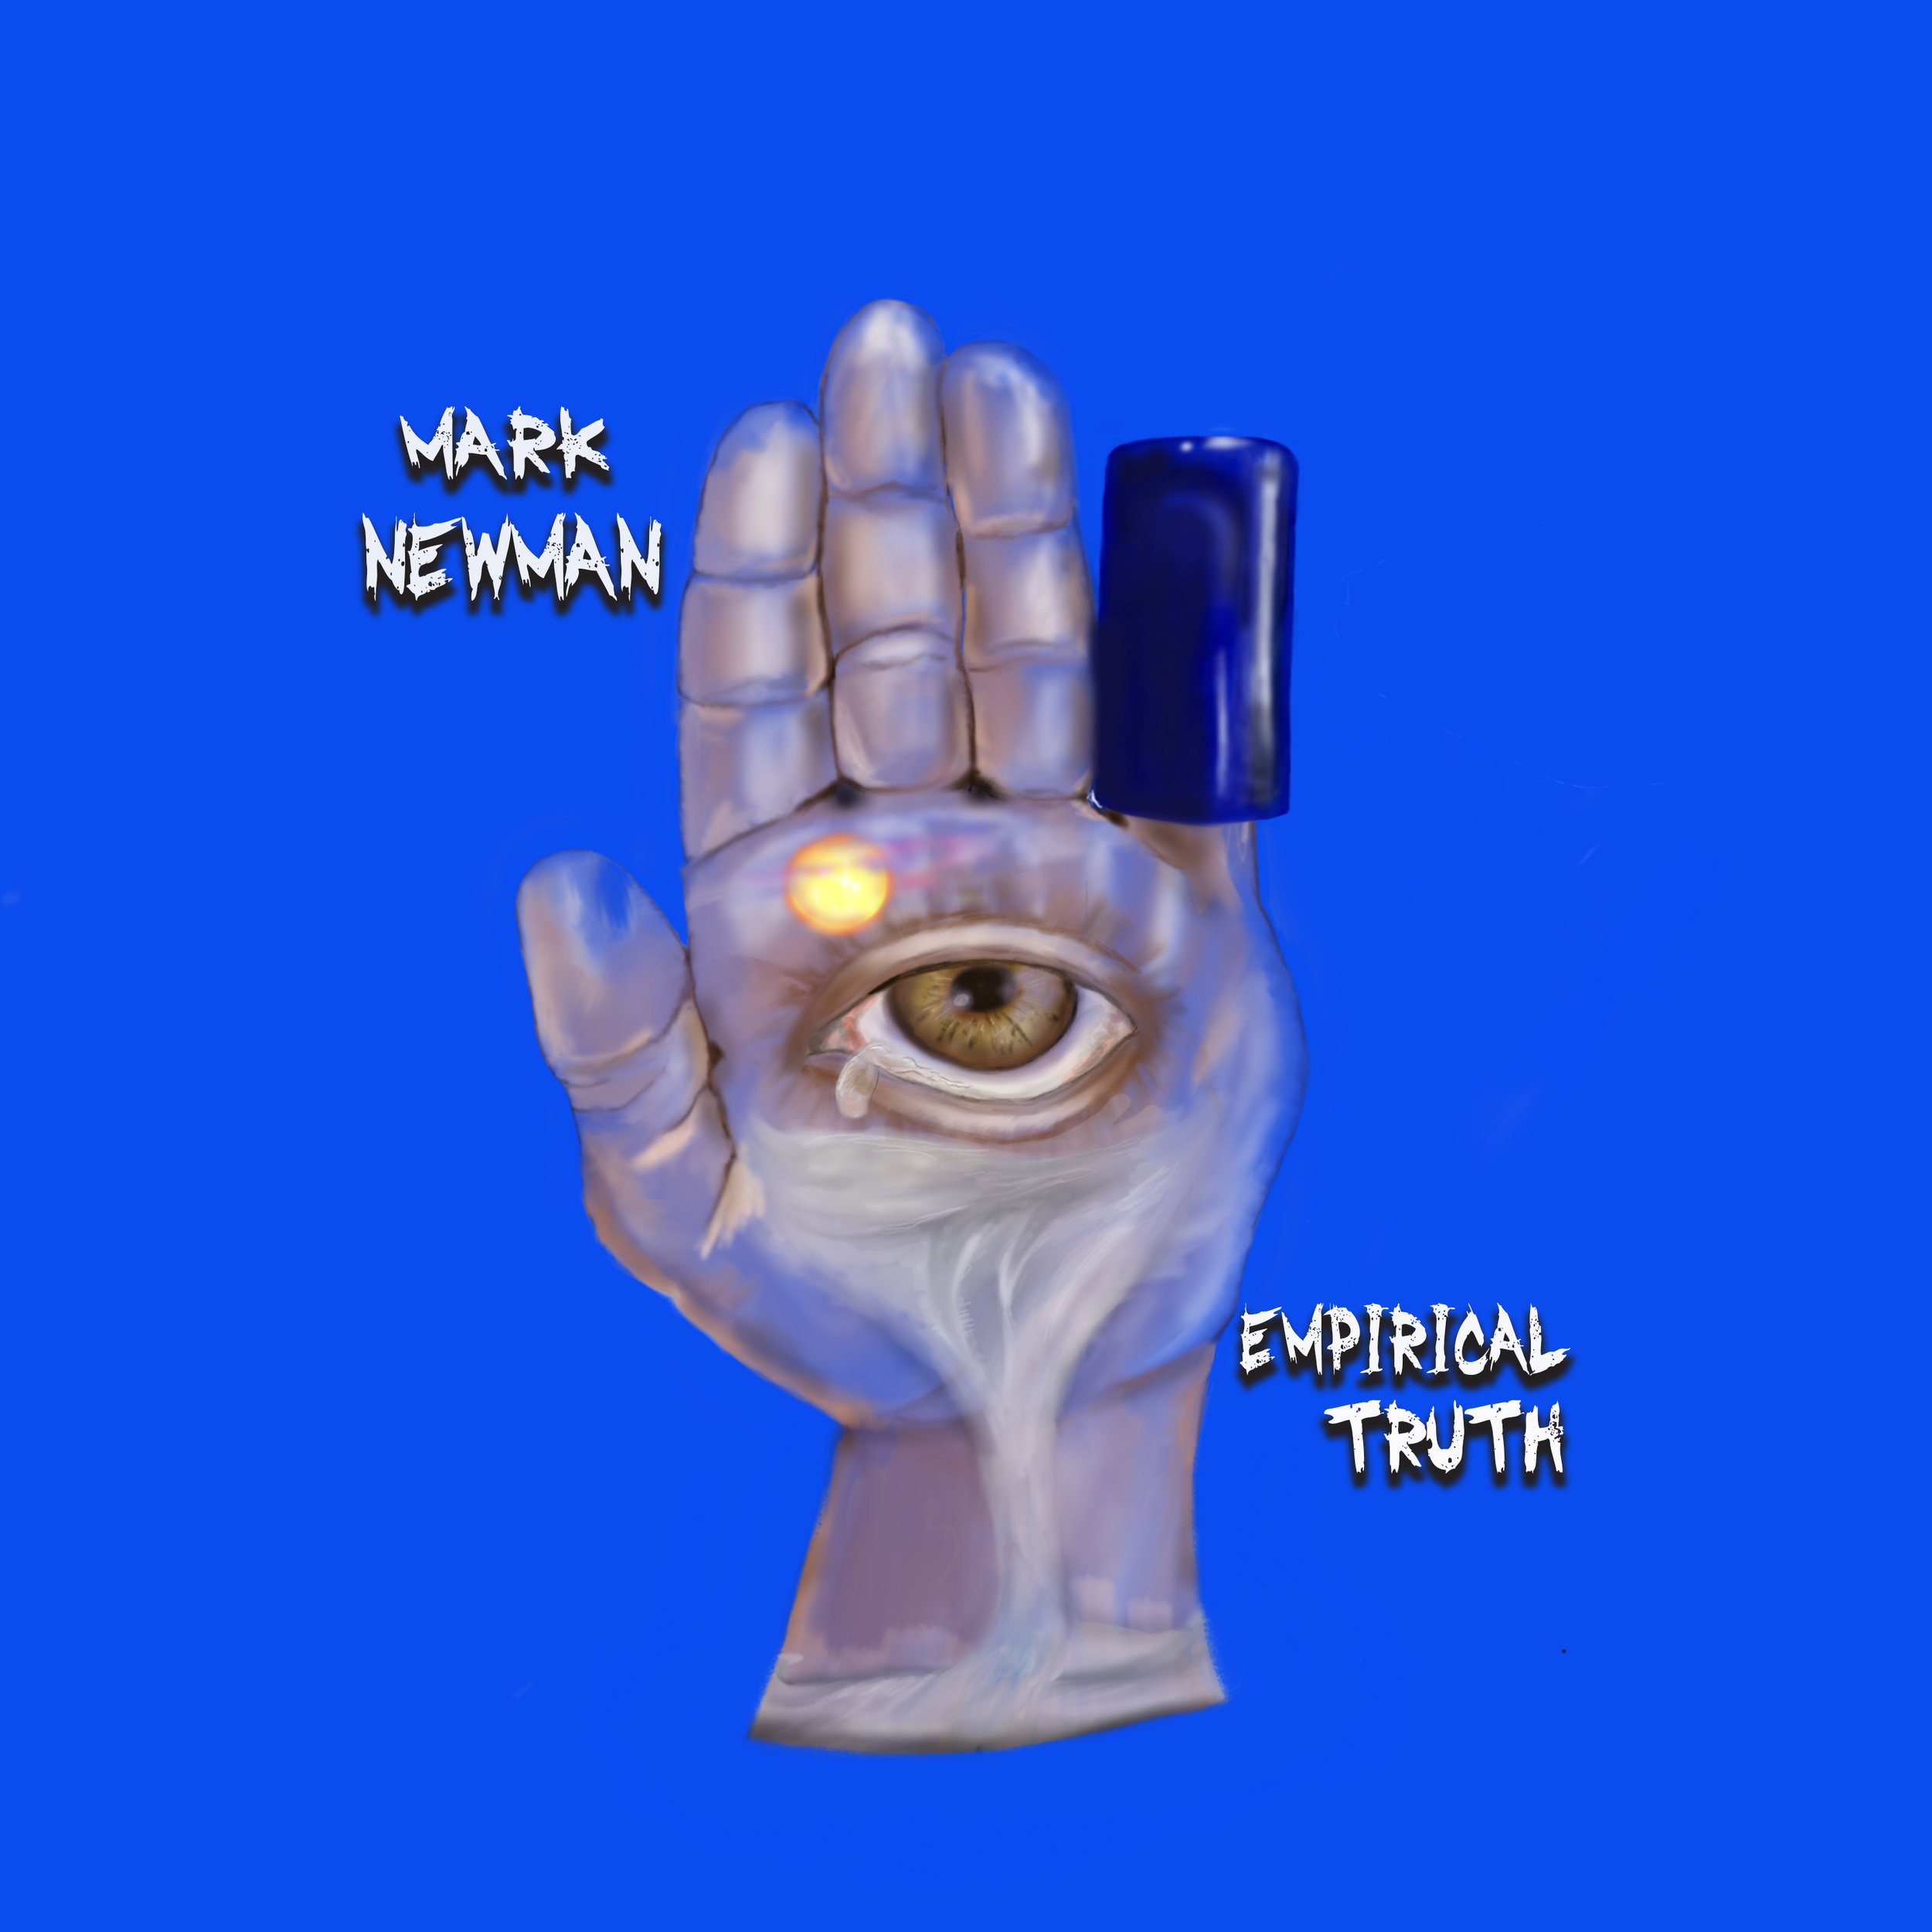 Purchaser Empirical Truth Today at WBARecords.net    CLICK HERE FOR MORE INFORMATION